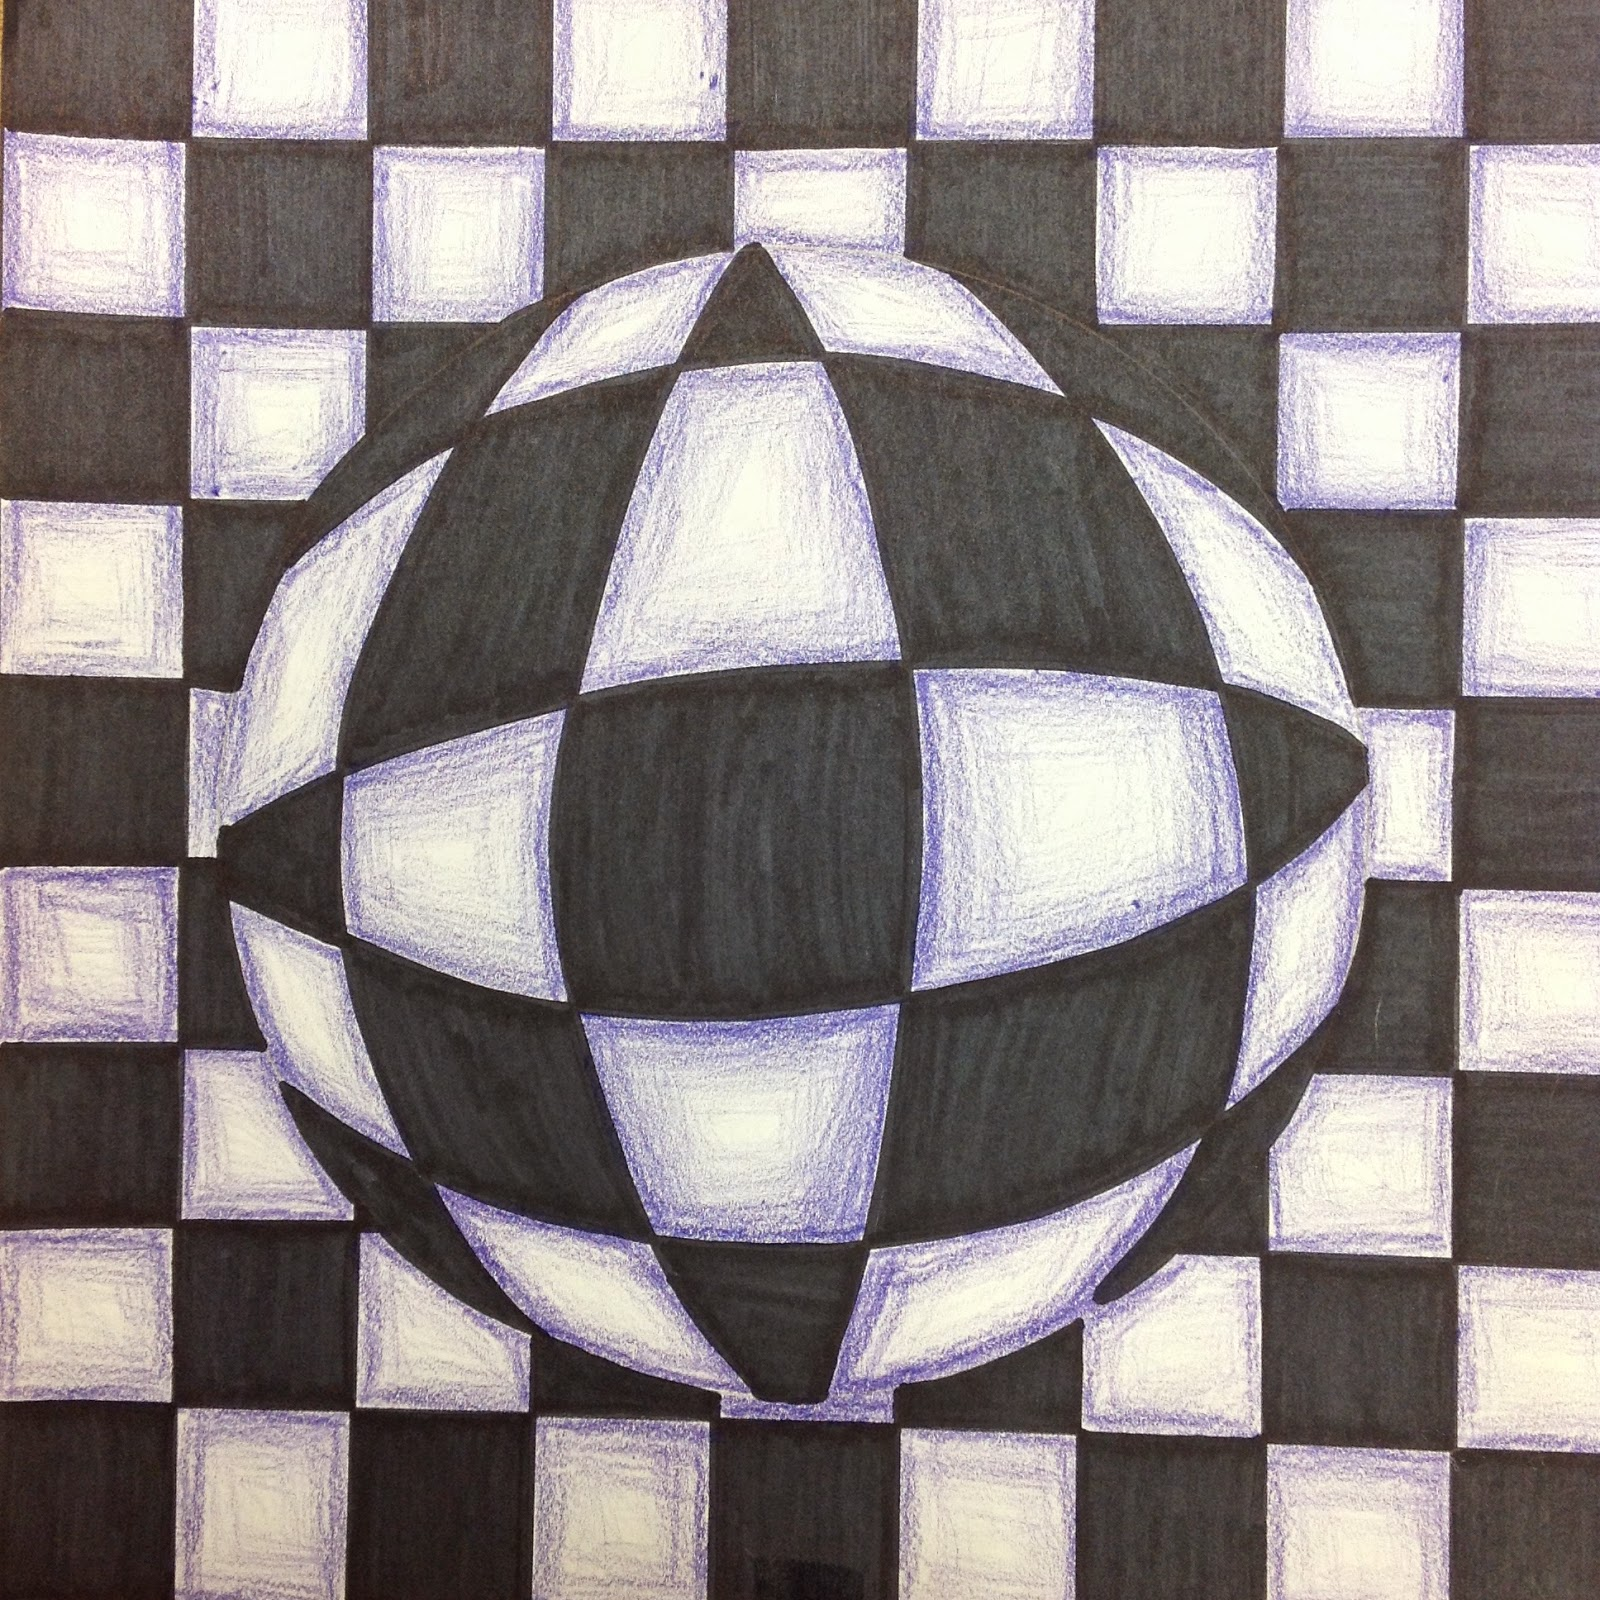 optical illusion drawing op grade illusions 5th drawn lesson checkerboard steps getdrawings arty pants miss pencil draping into